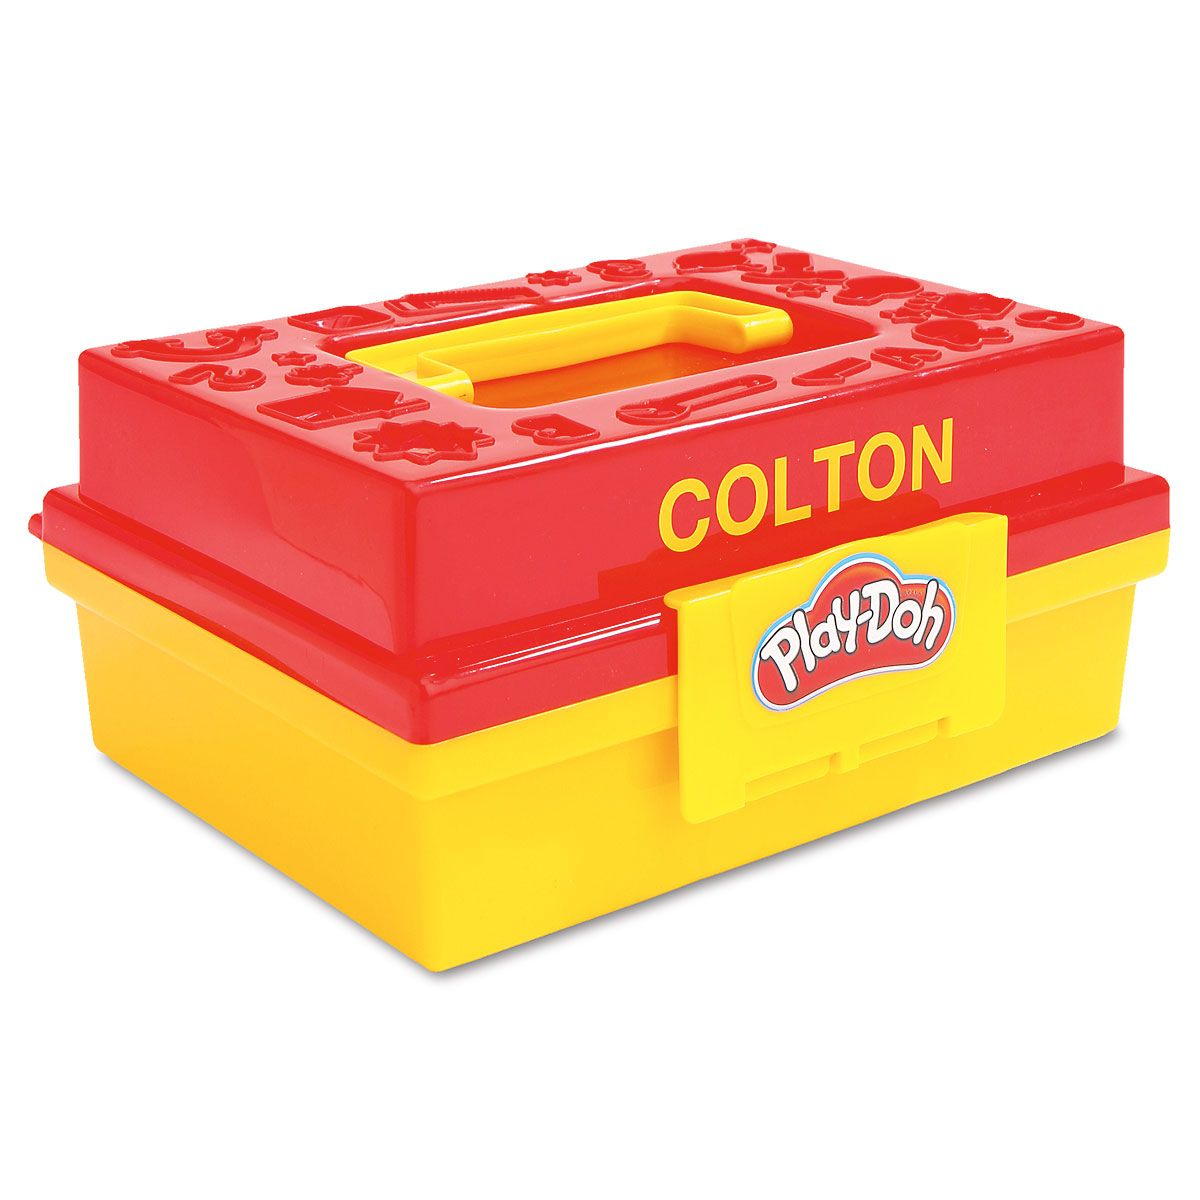 Personalized Play-Doh® Carrier